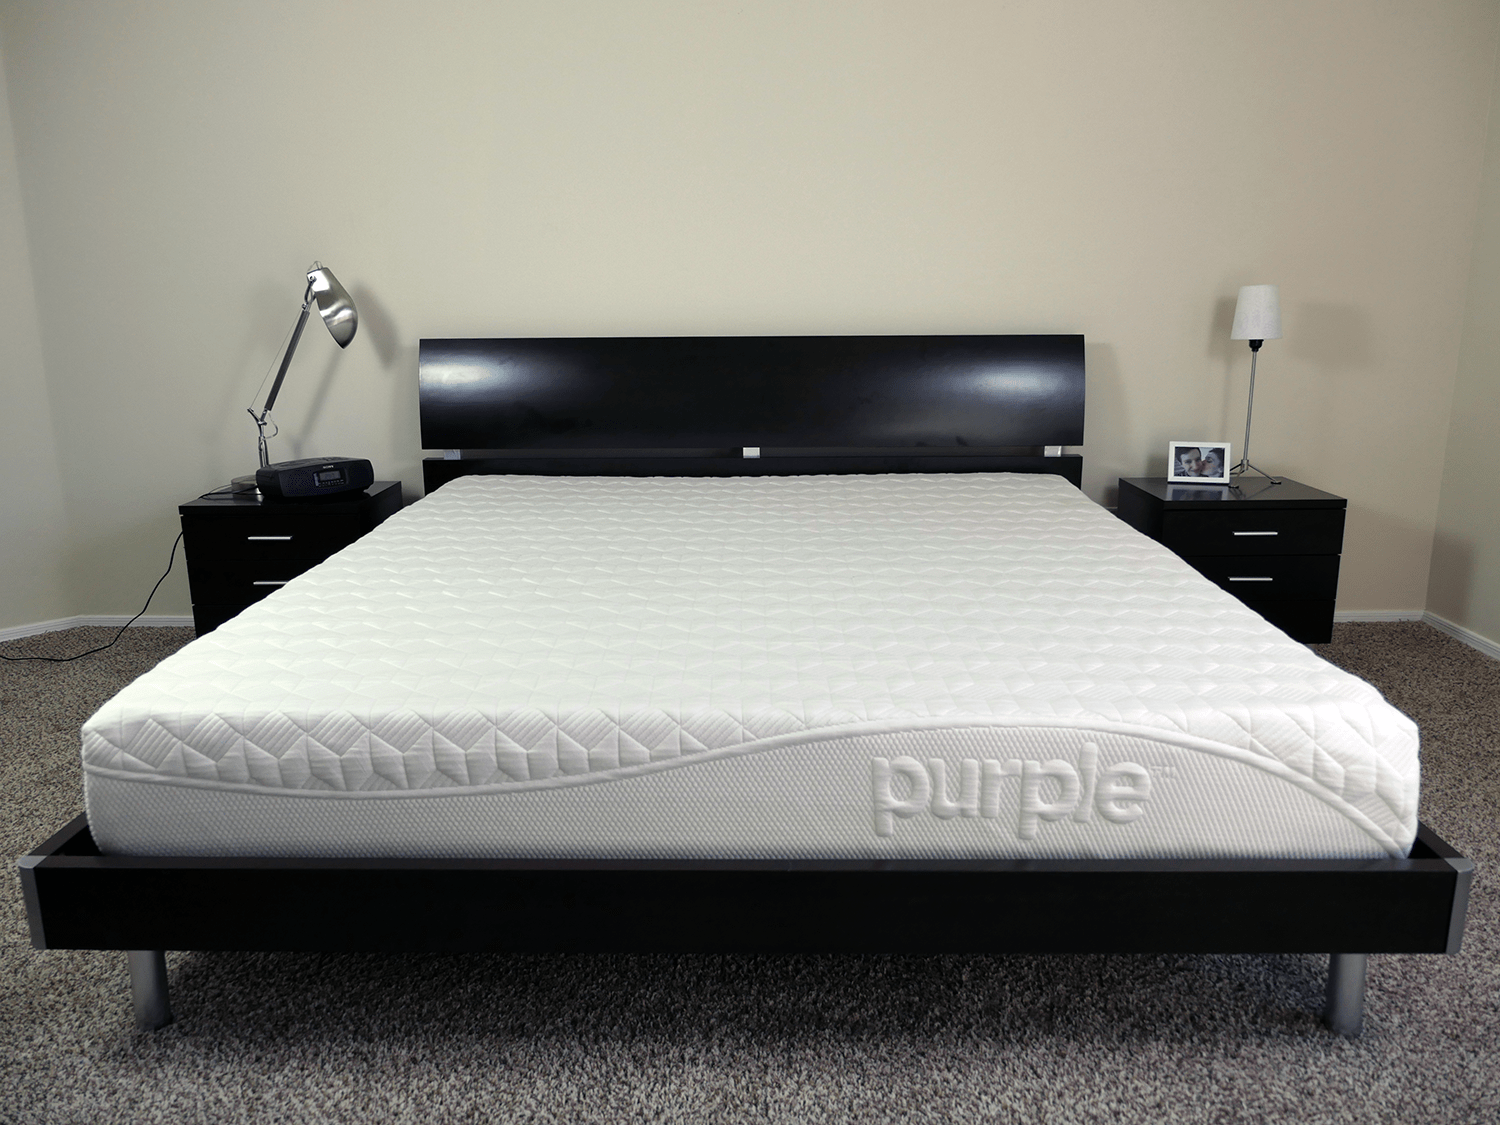 King size Purple Mattress